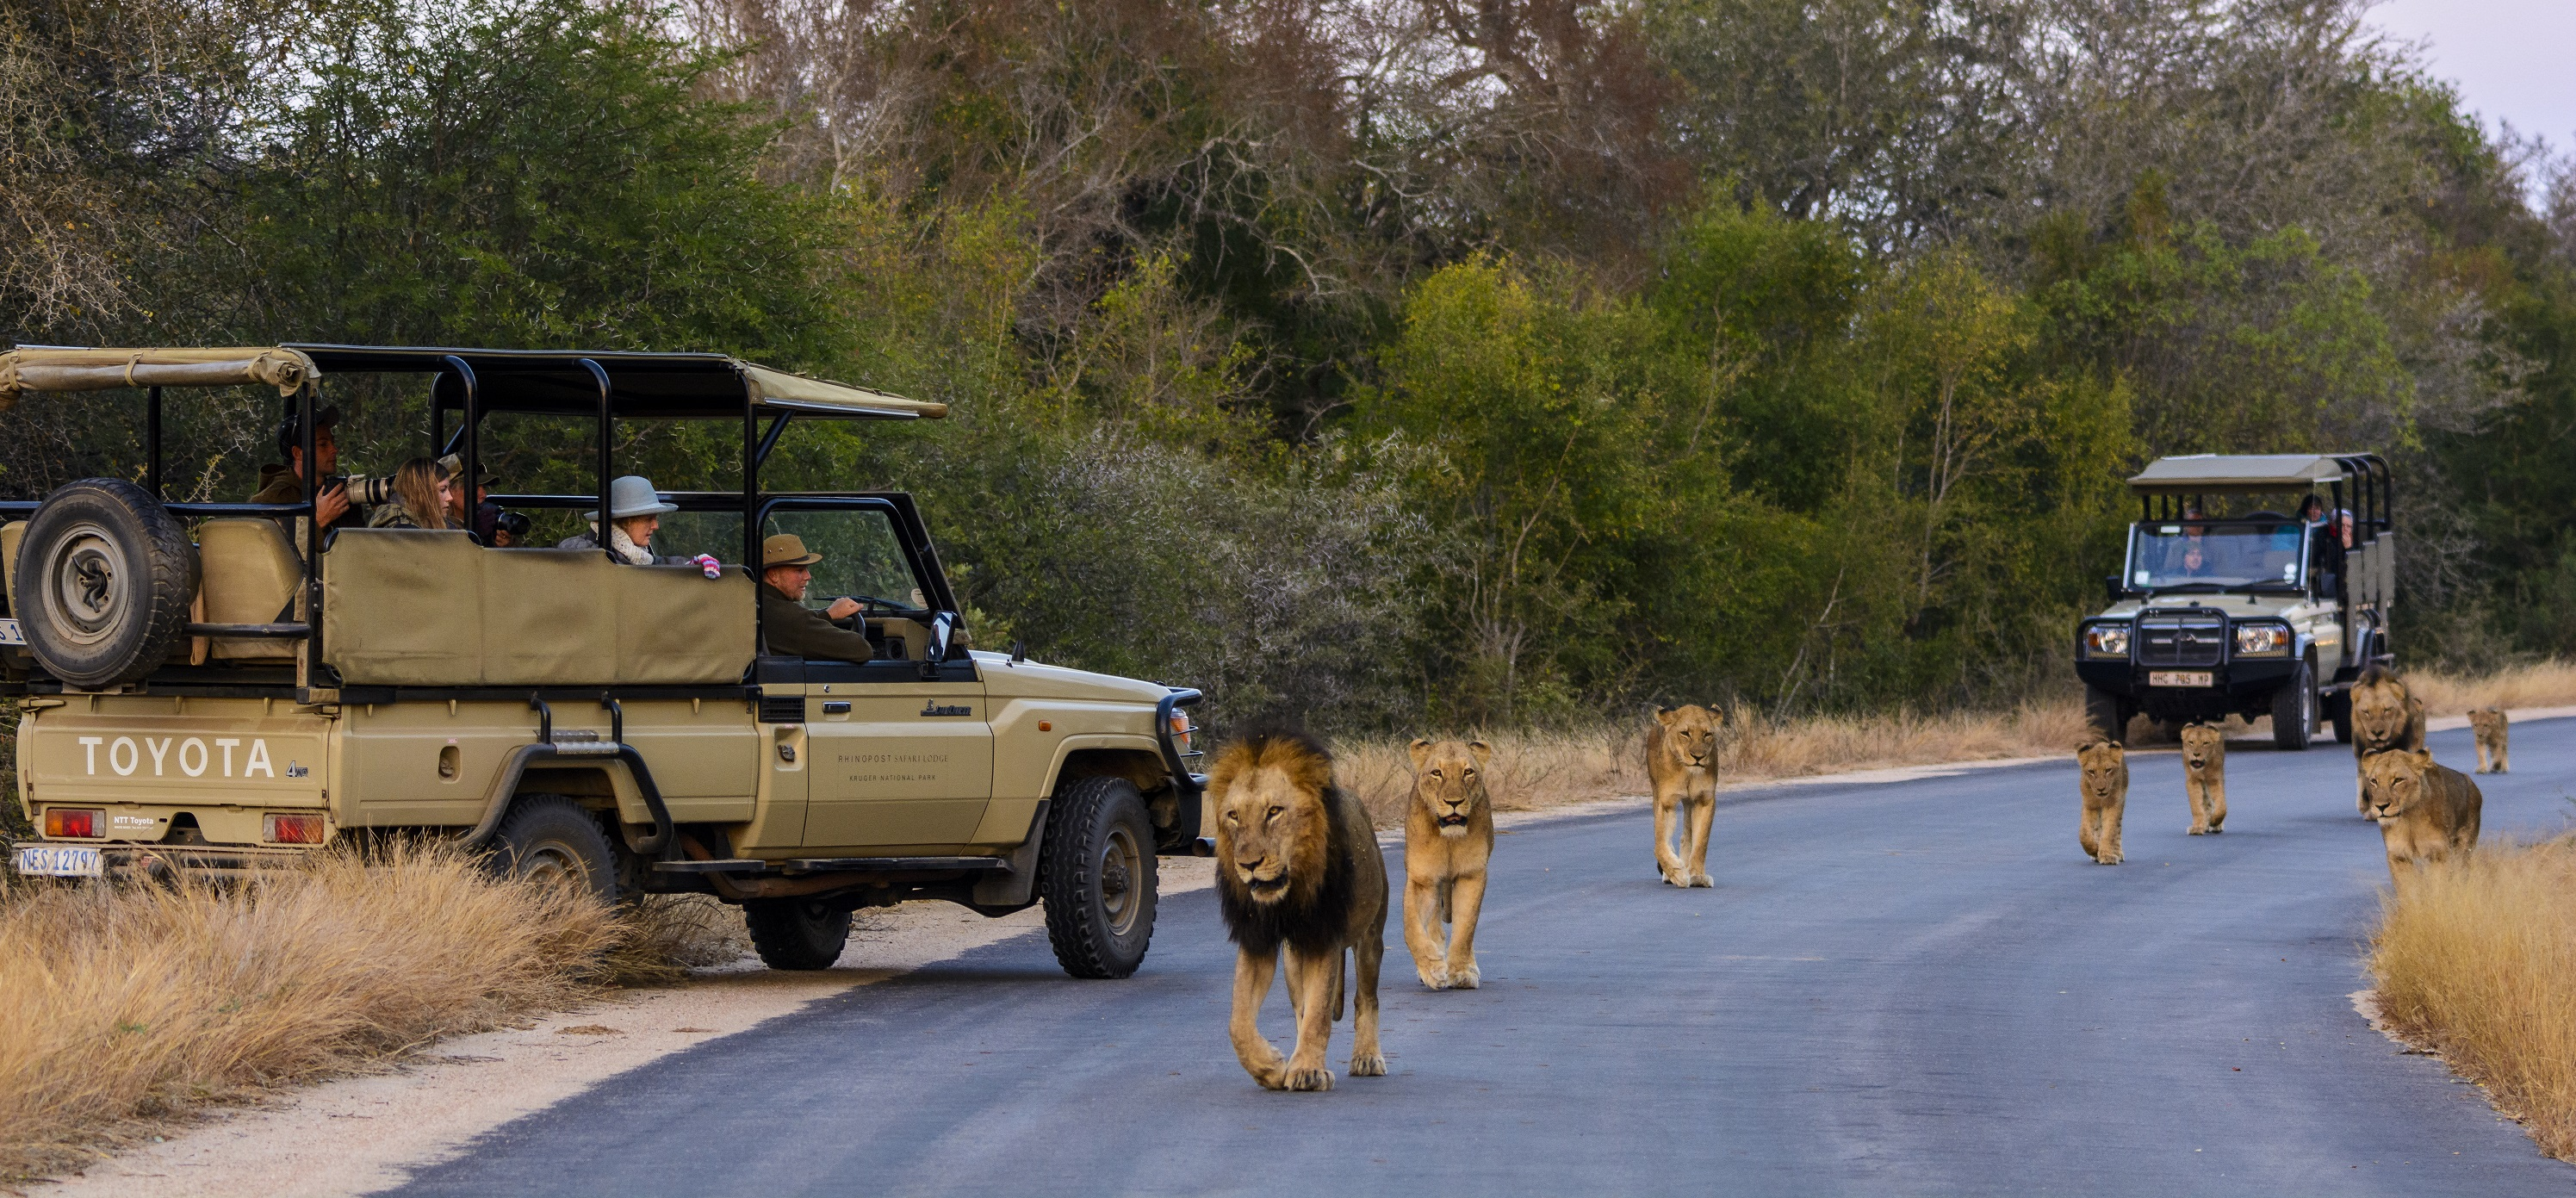 a guidebook to kruger national park in south africa Kruger national park is undoubtedly one of the world's best game parks, where teeming game roams freely over an area the size of wales or israel visiting kruger is likely to be one of the.